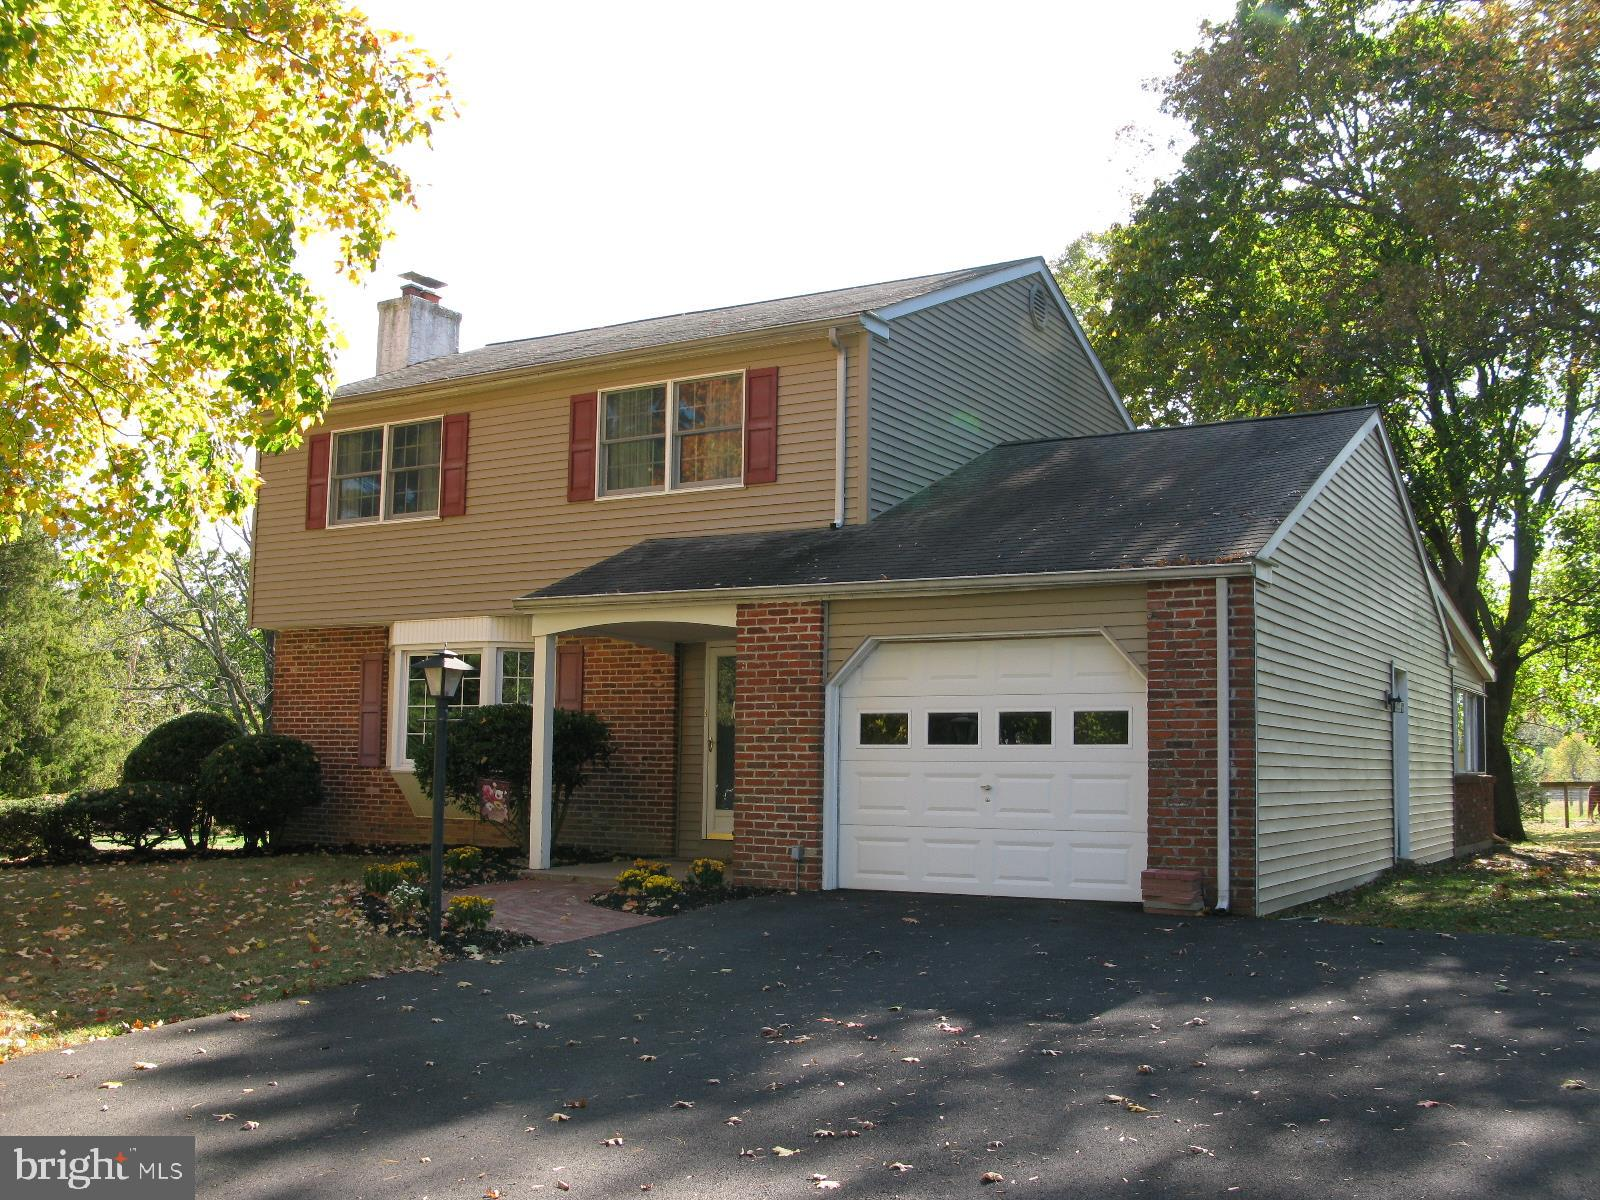 76 VALLEY VIEW DRIVE, FOUNTAINVILLE, PA 18923